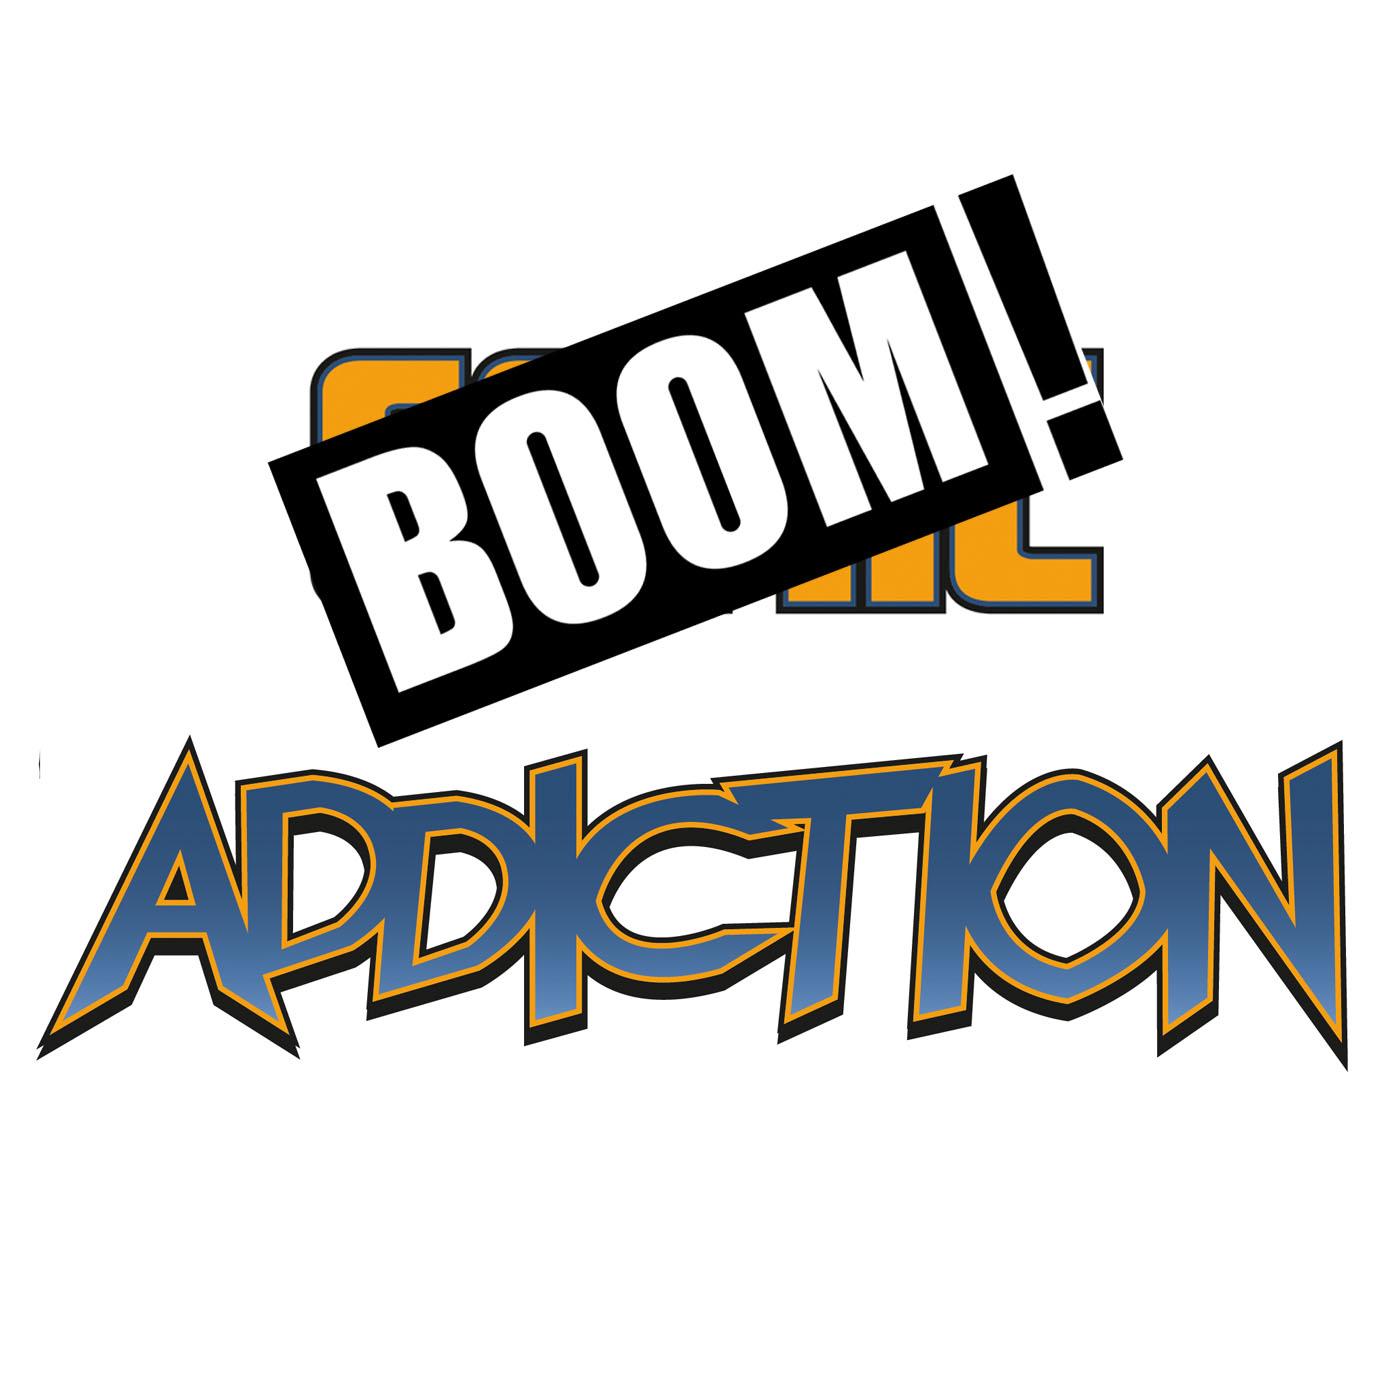 BOOM! Addiction - Episode 24: Birds of a Feather